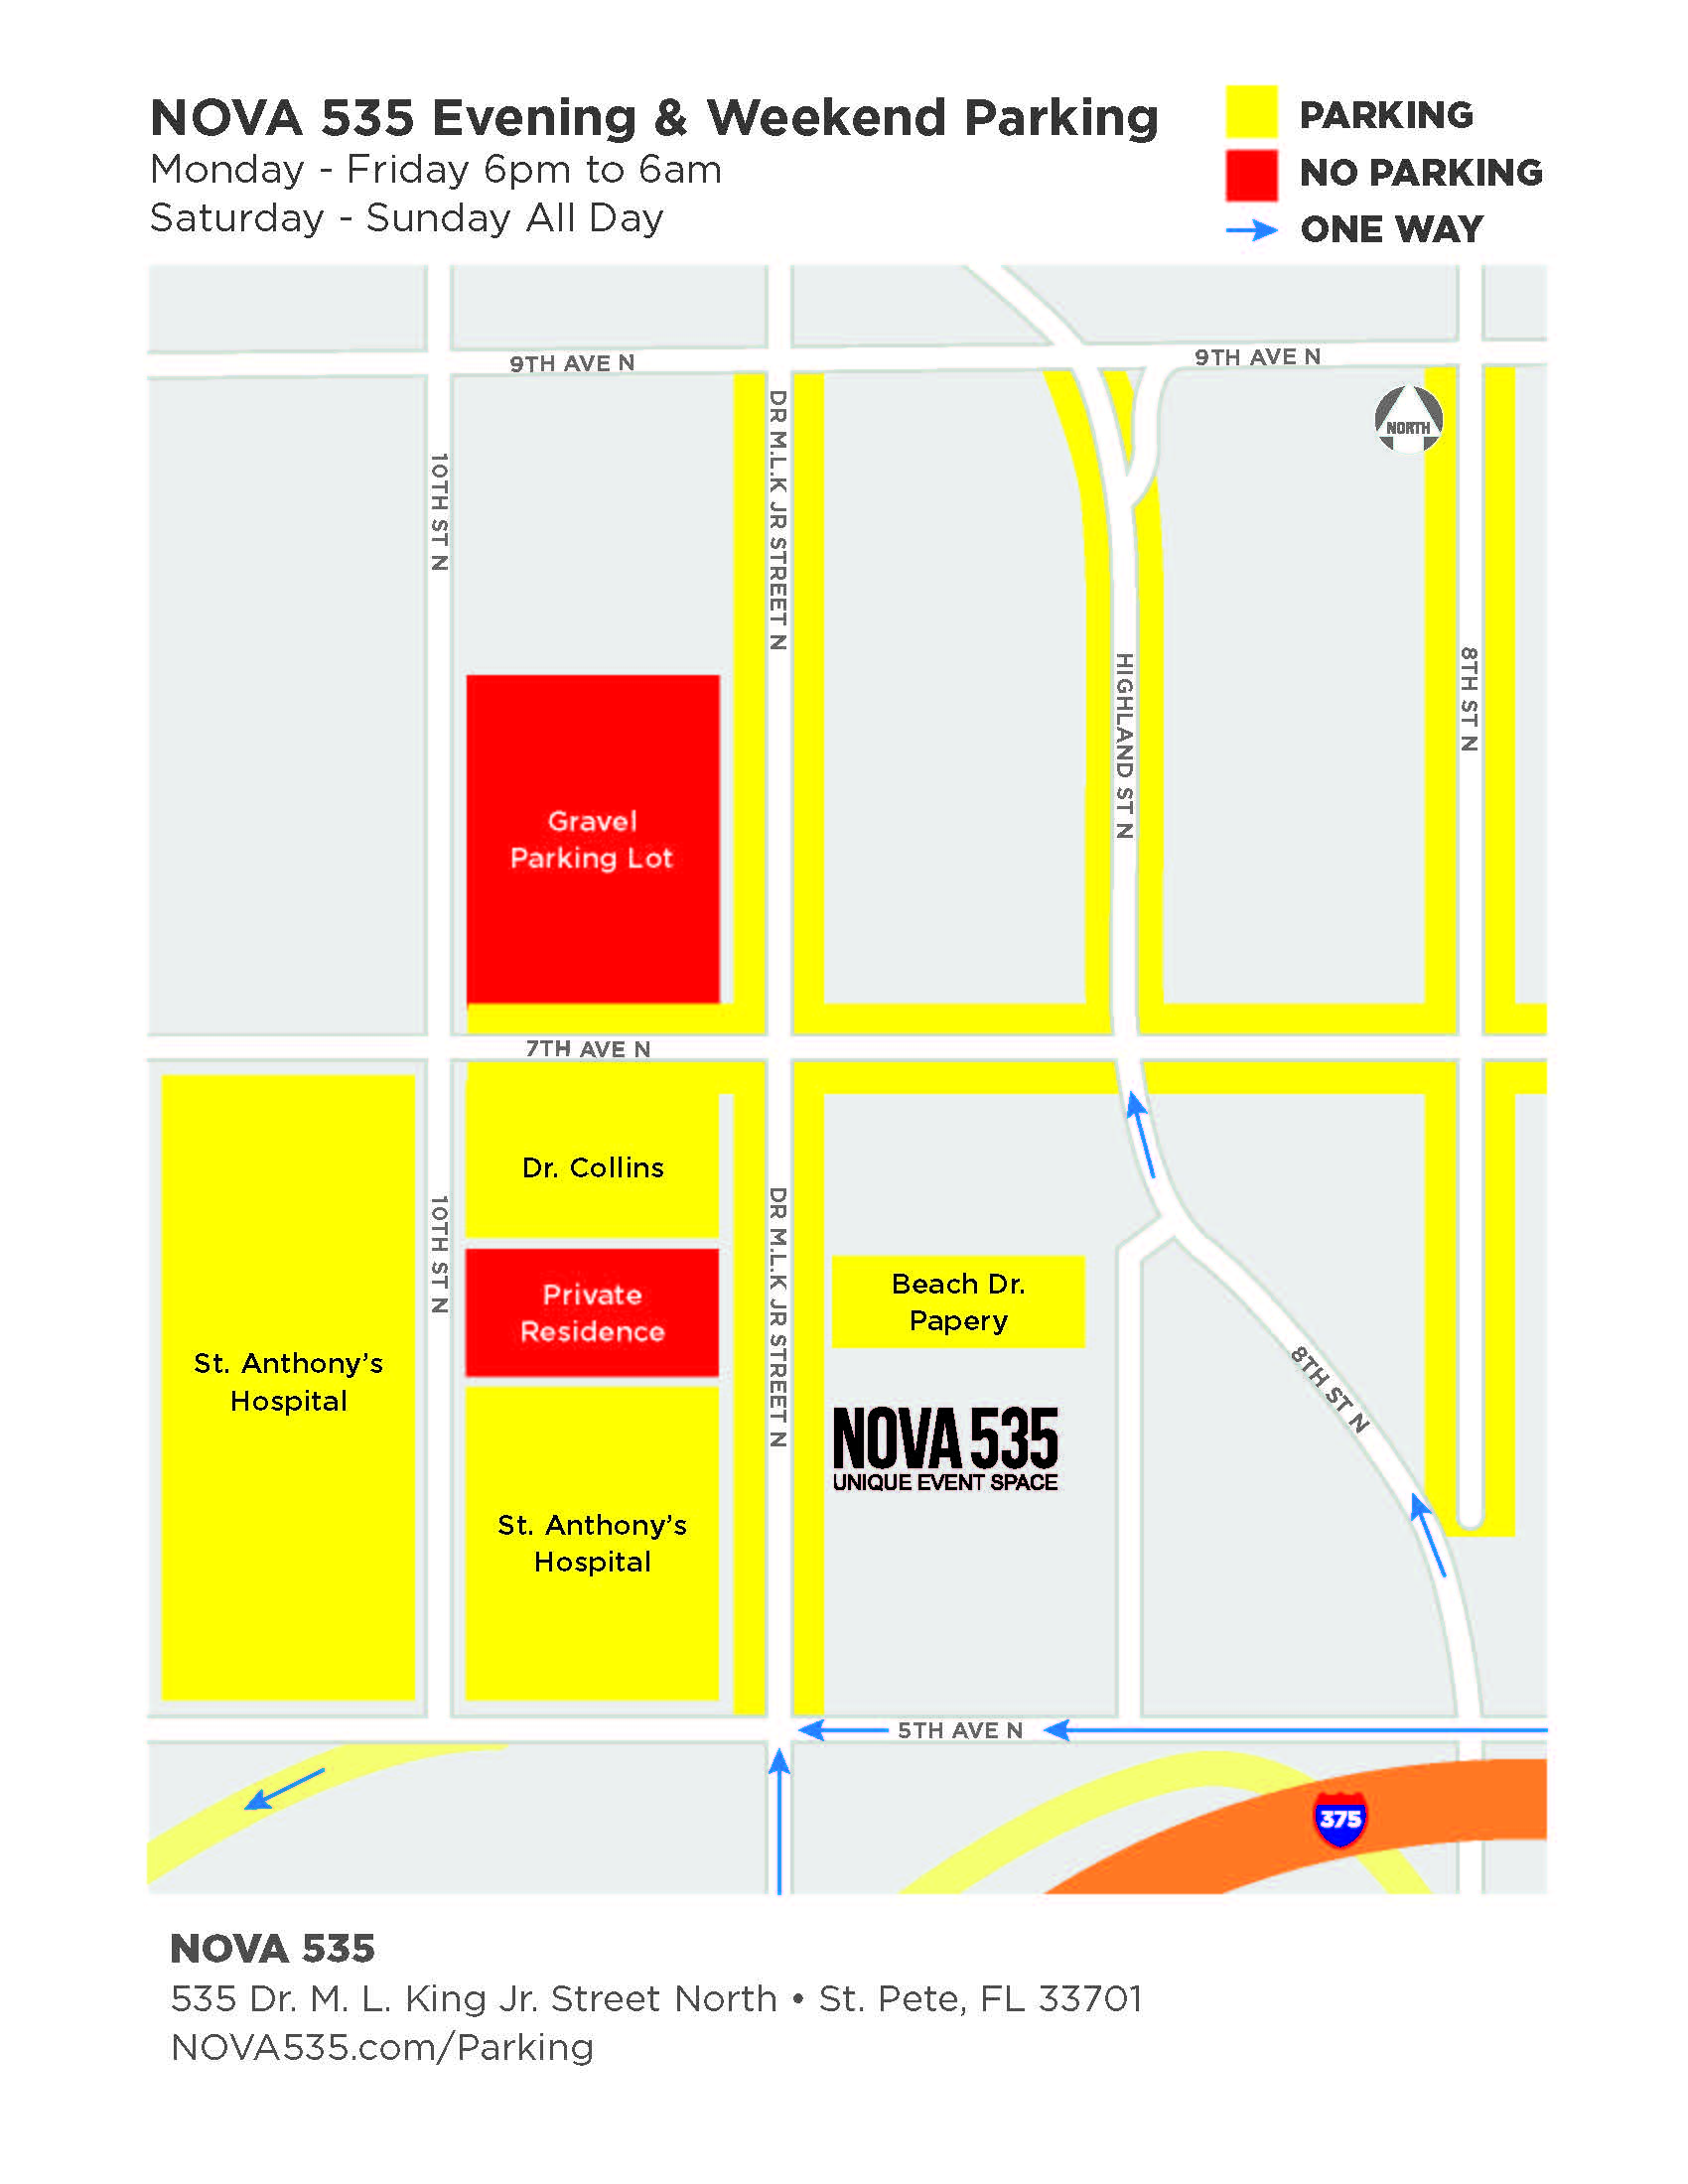 2020 NOVA 535 Parking Map for Nights and Weekends